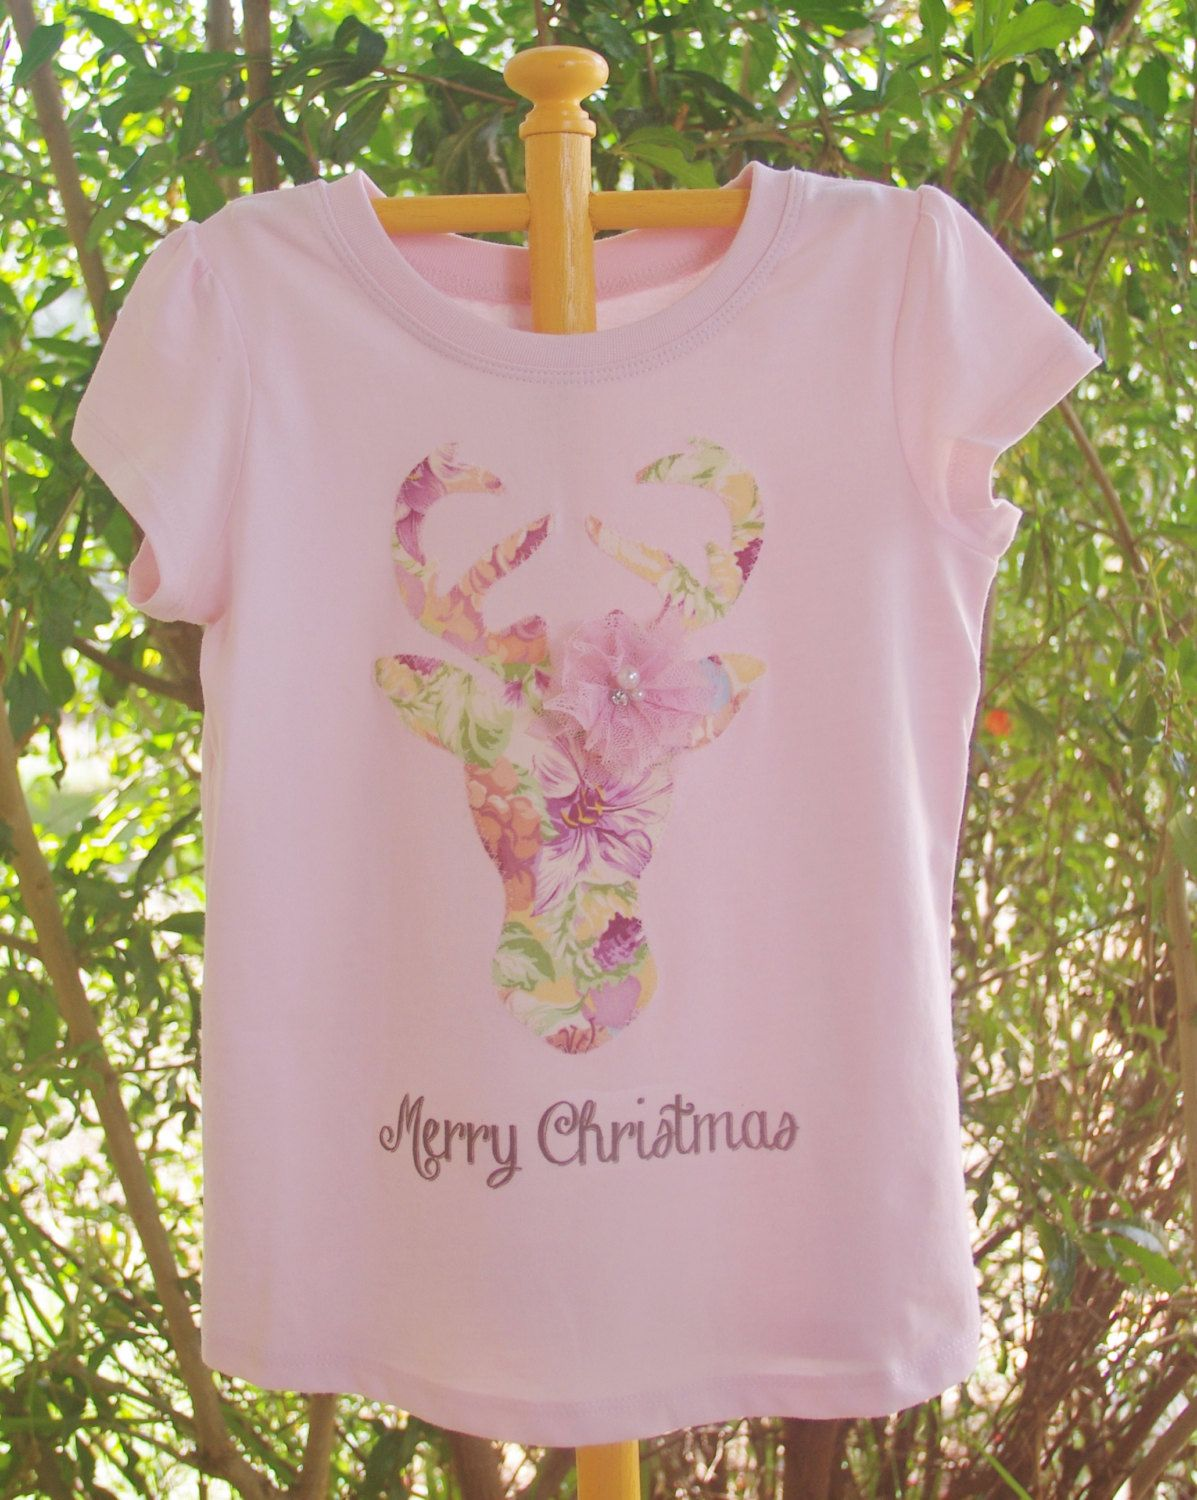 Girls Cowgirl Deer Christmas T-shirt by ThreeHandmade on Etsy https://www.etsy.com/listing/254623739/girls-cowgirl-deer-christmas-t-shirt